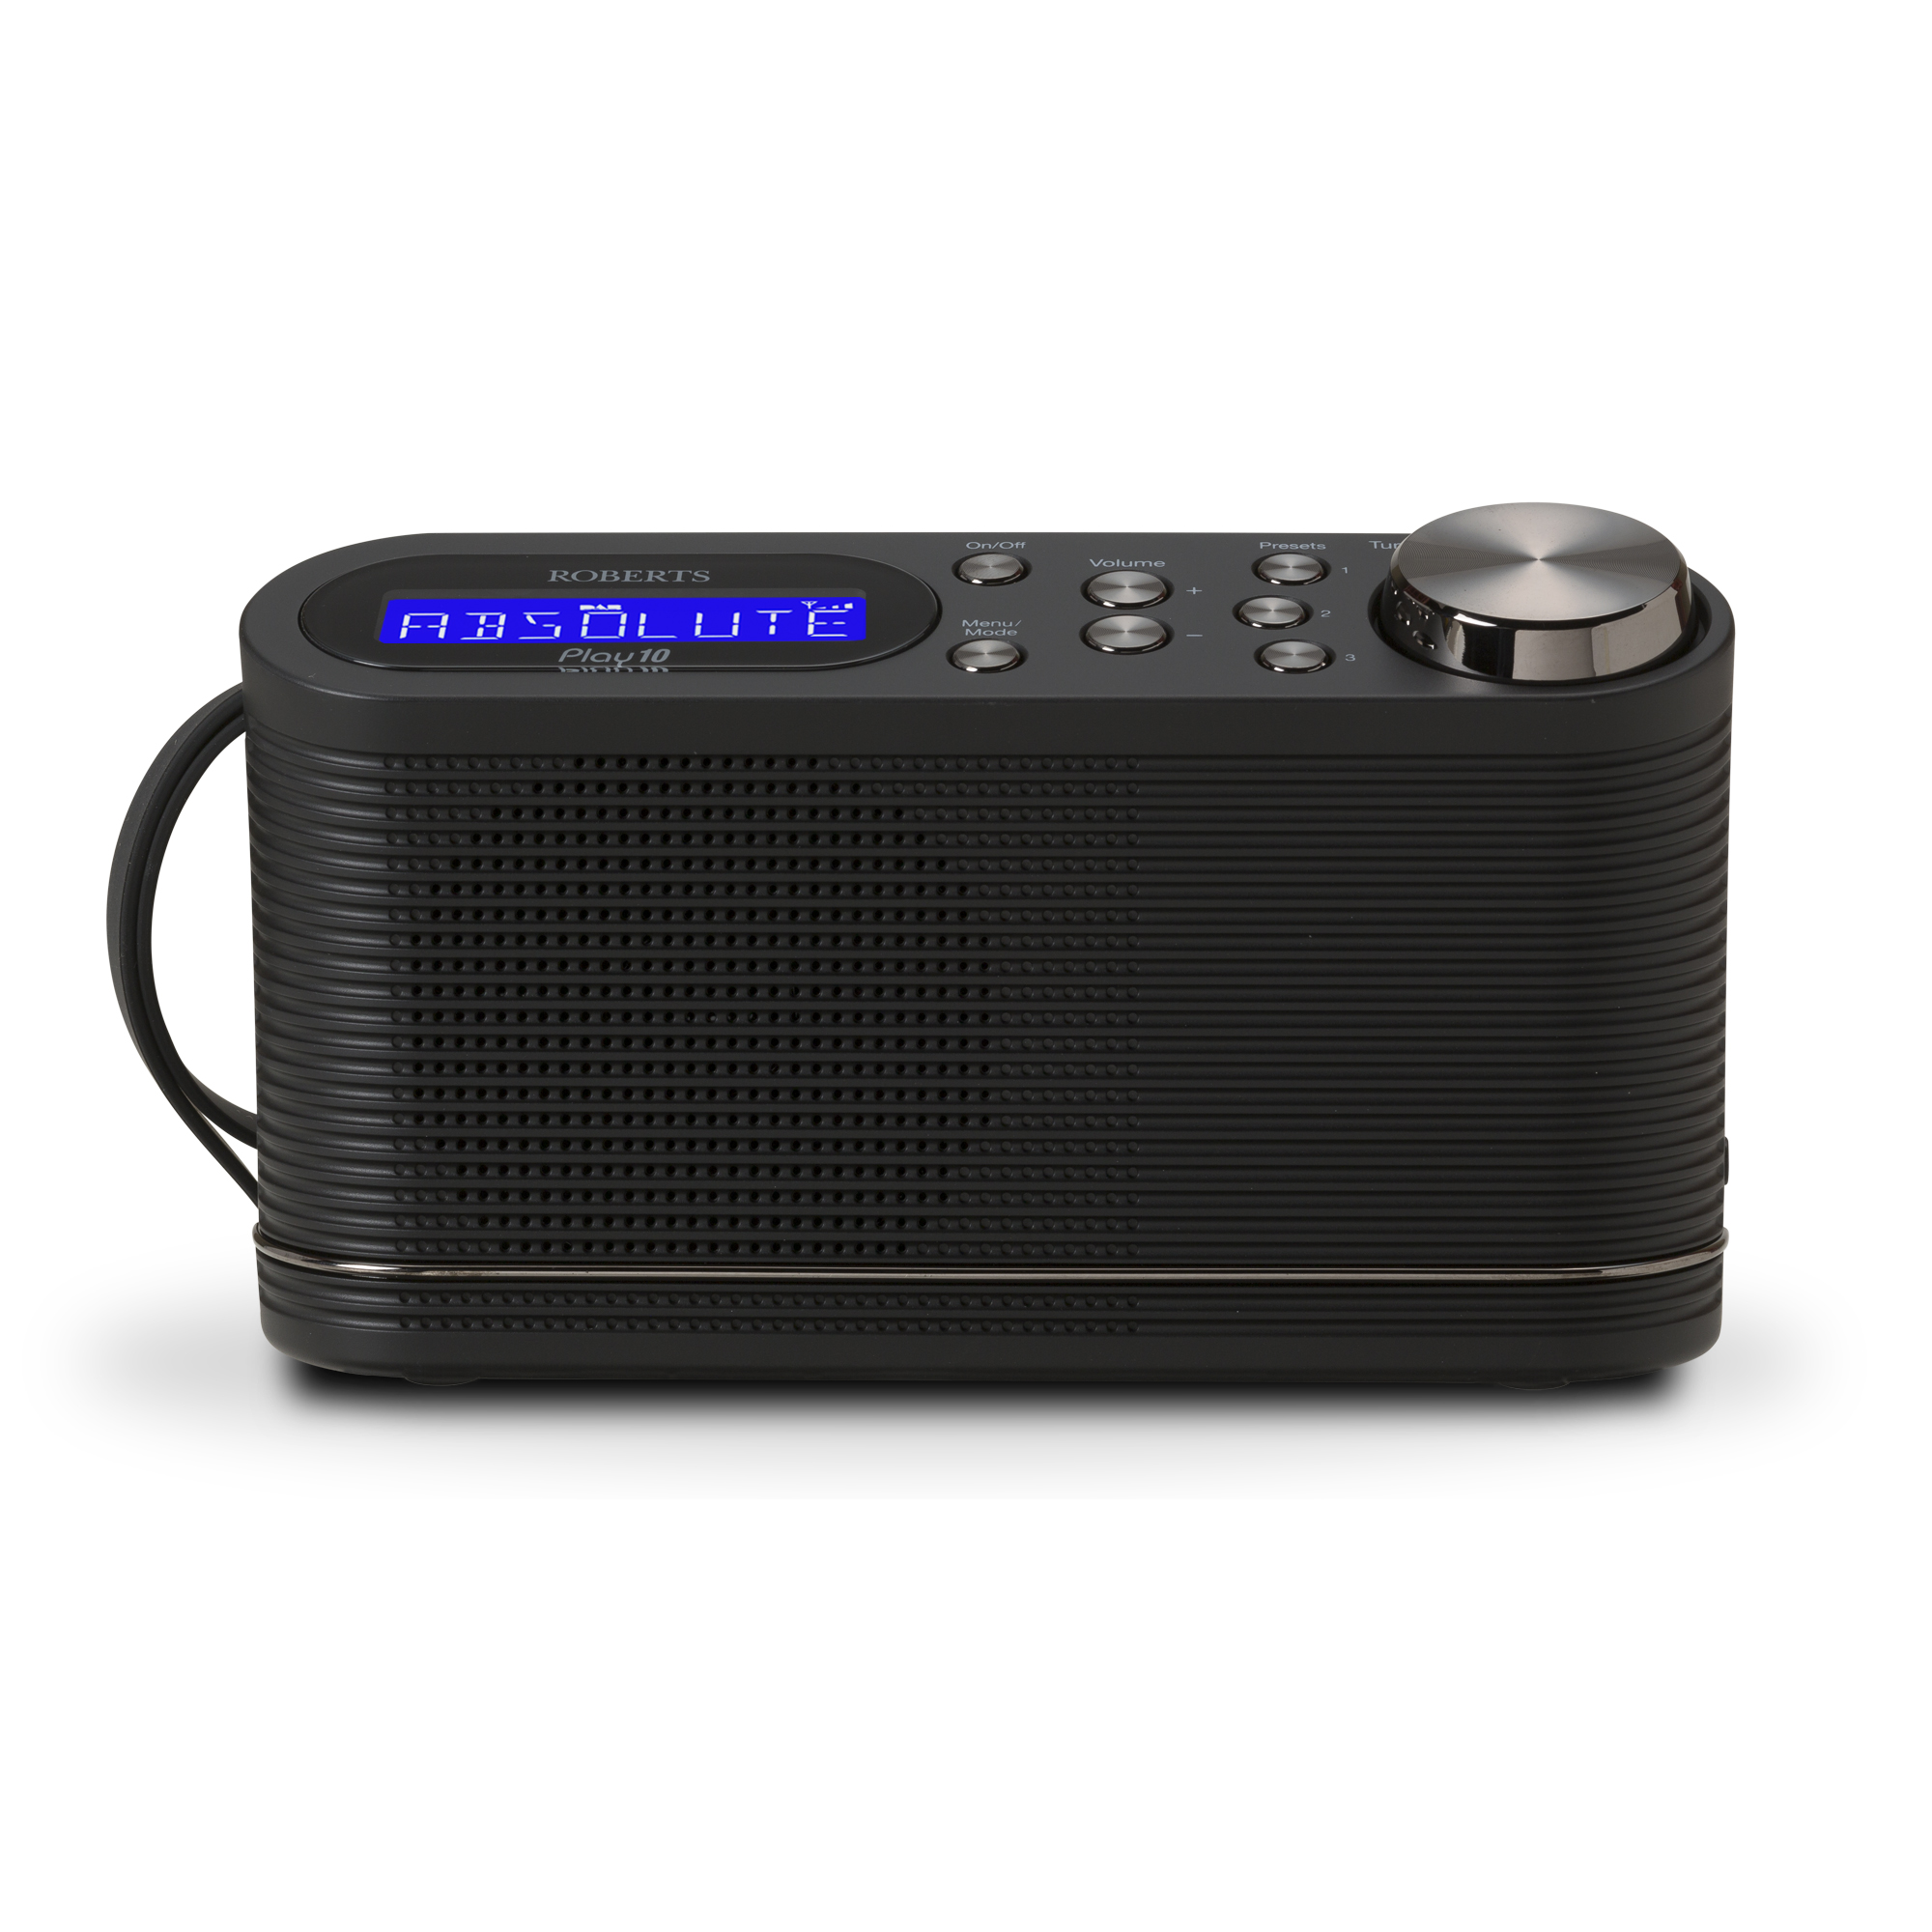 Roberts PLAY 10 DAB Digital Radio 6 Station Presets Ref PLAY10